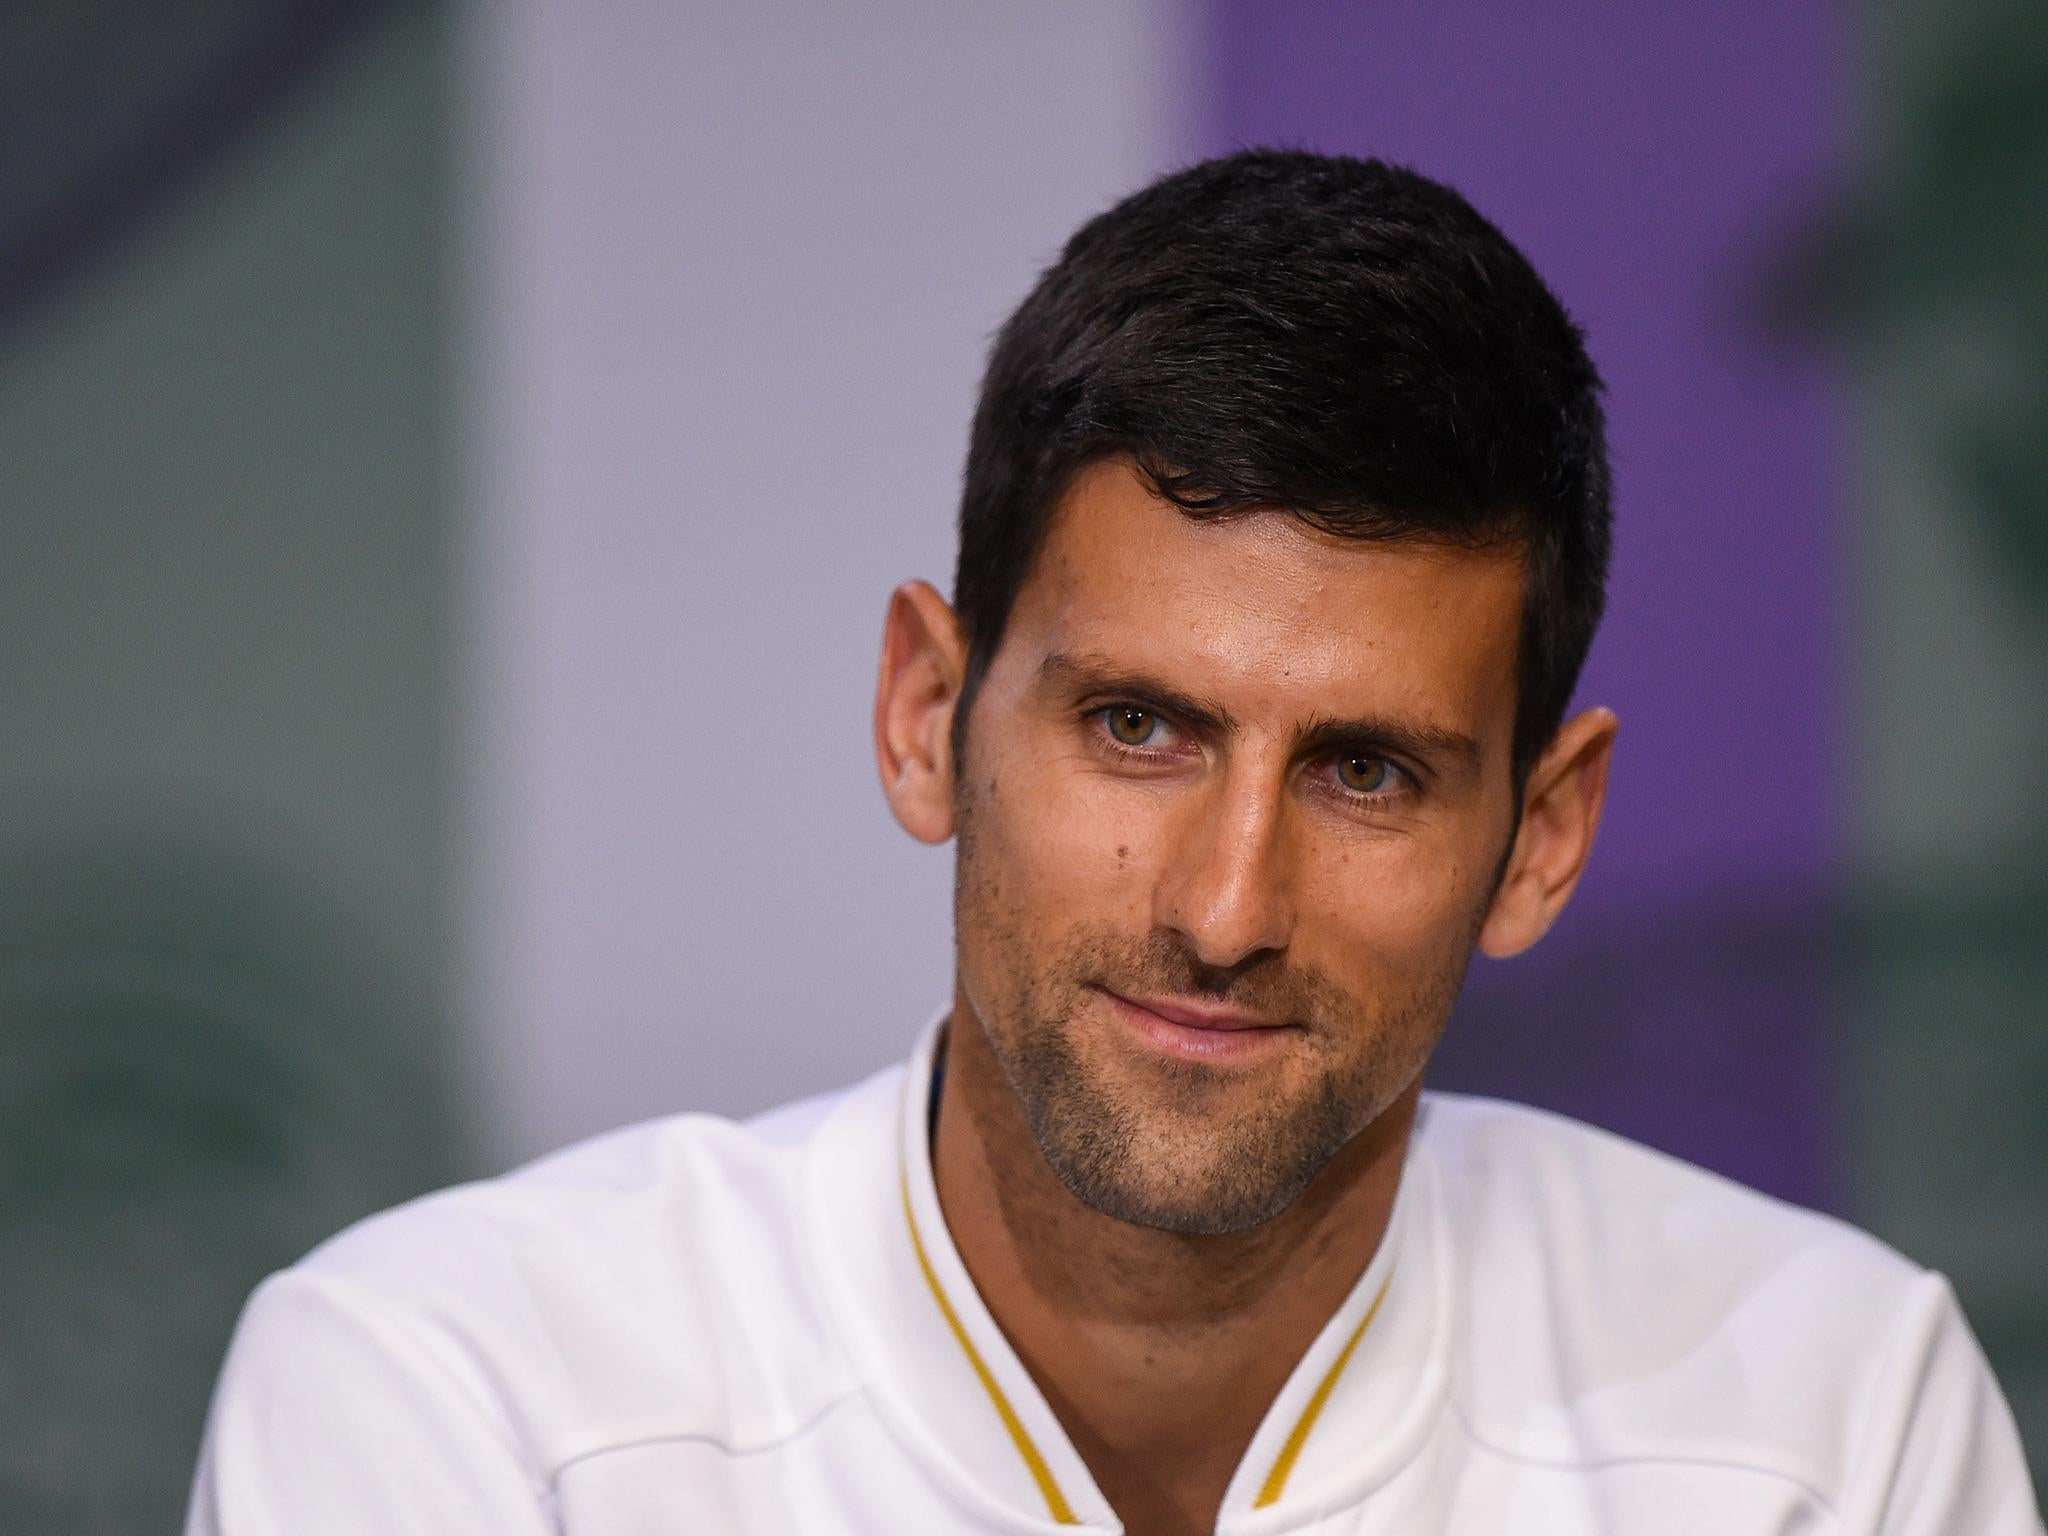 novak djokovic - photo #20